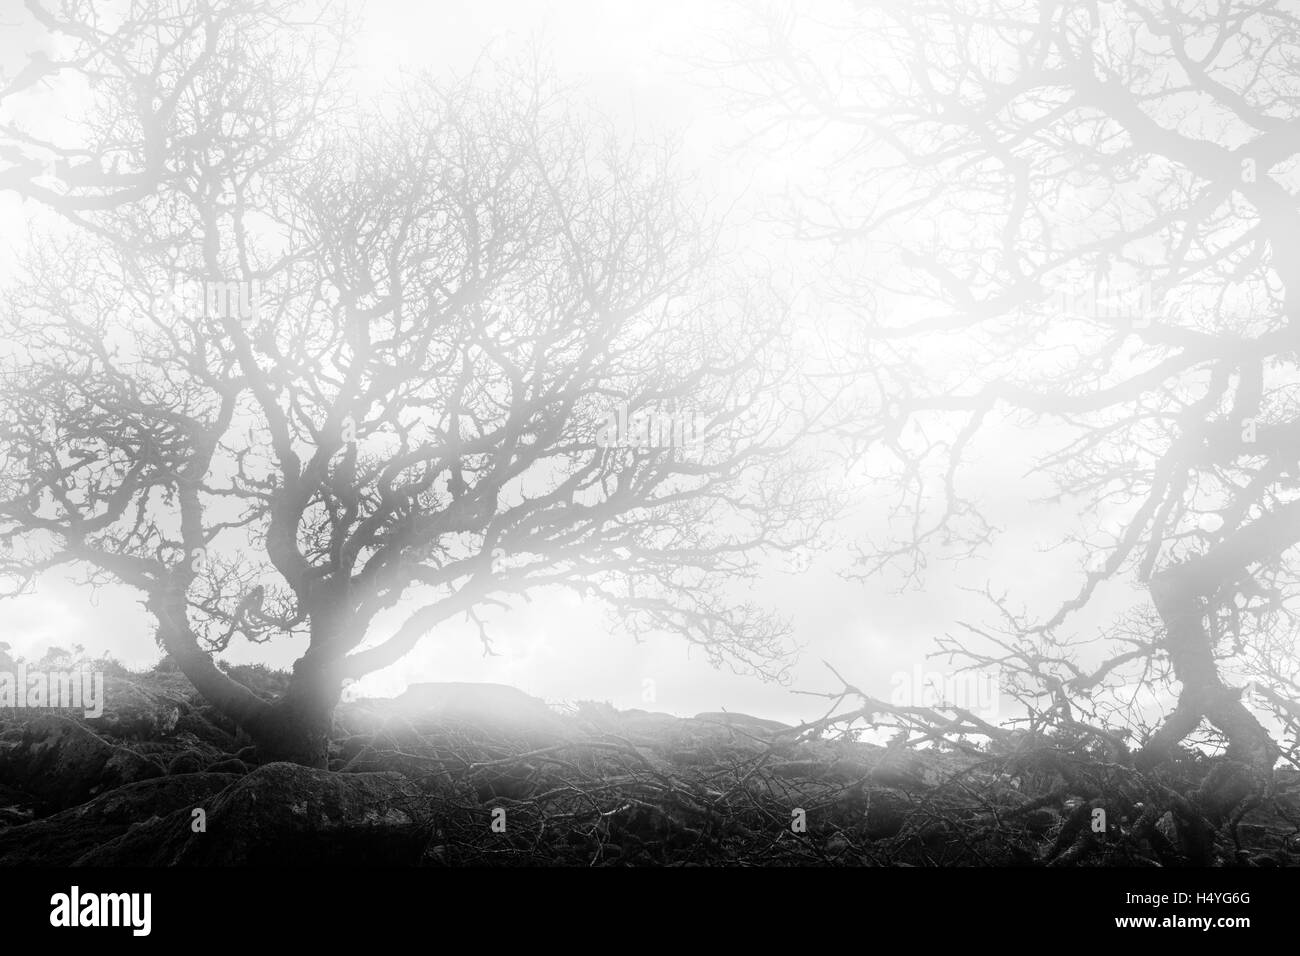 Ancient oaks in the fog in Wistmans Wood, Dartmoor National Park, Devon, United Kingdom, monochrome Stock Photo